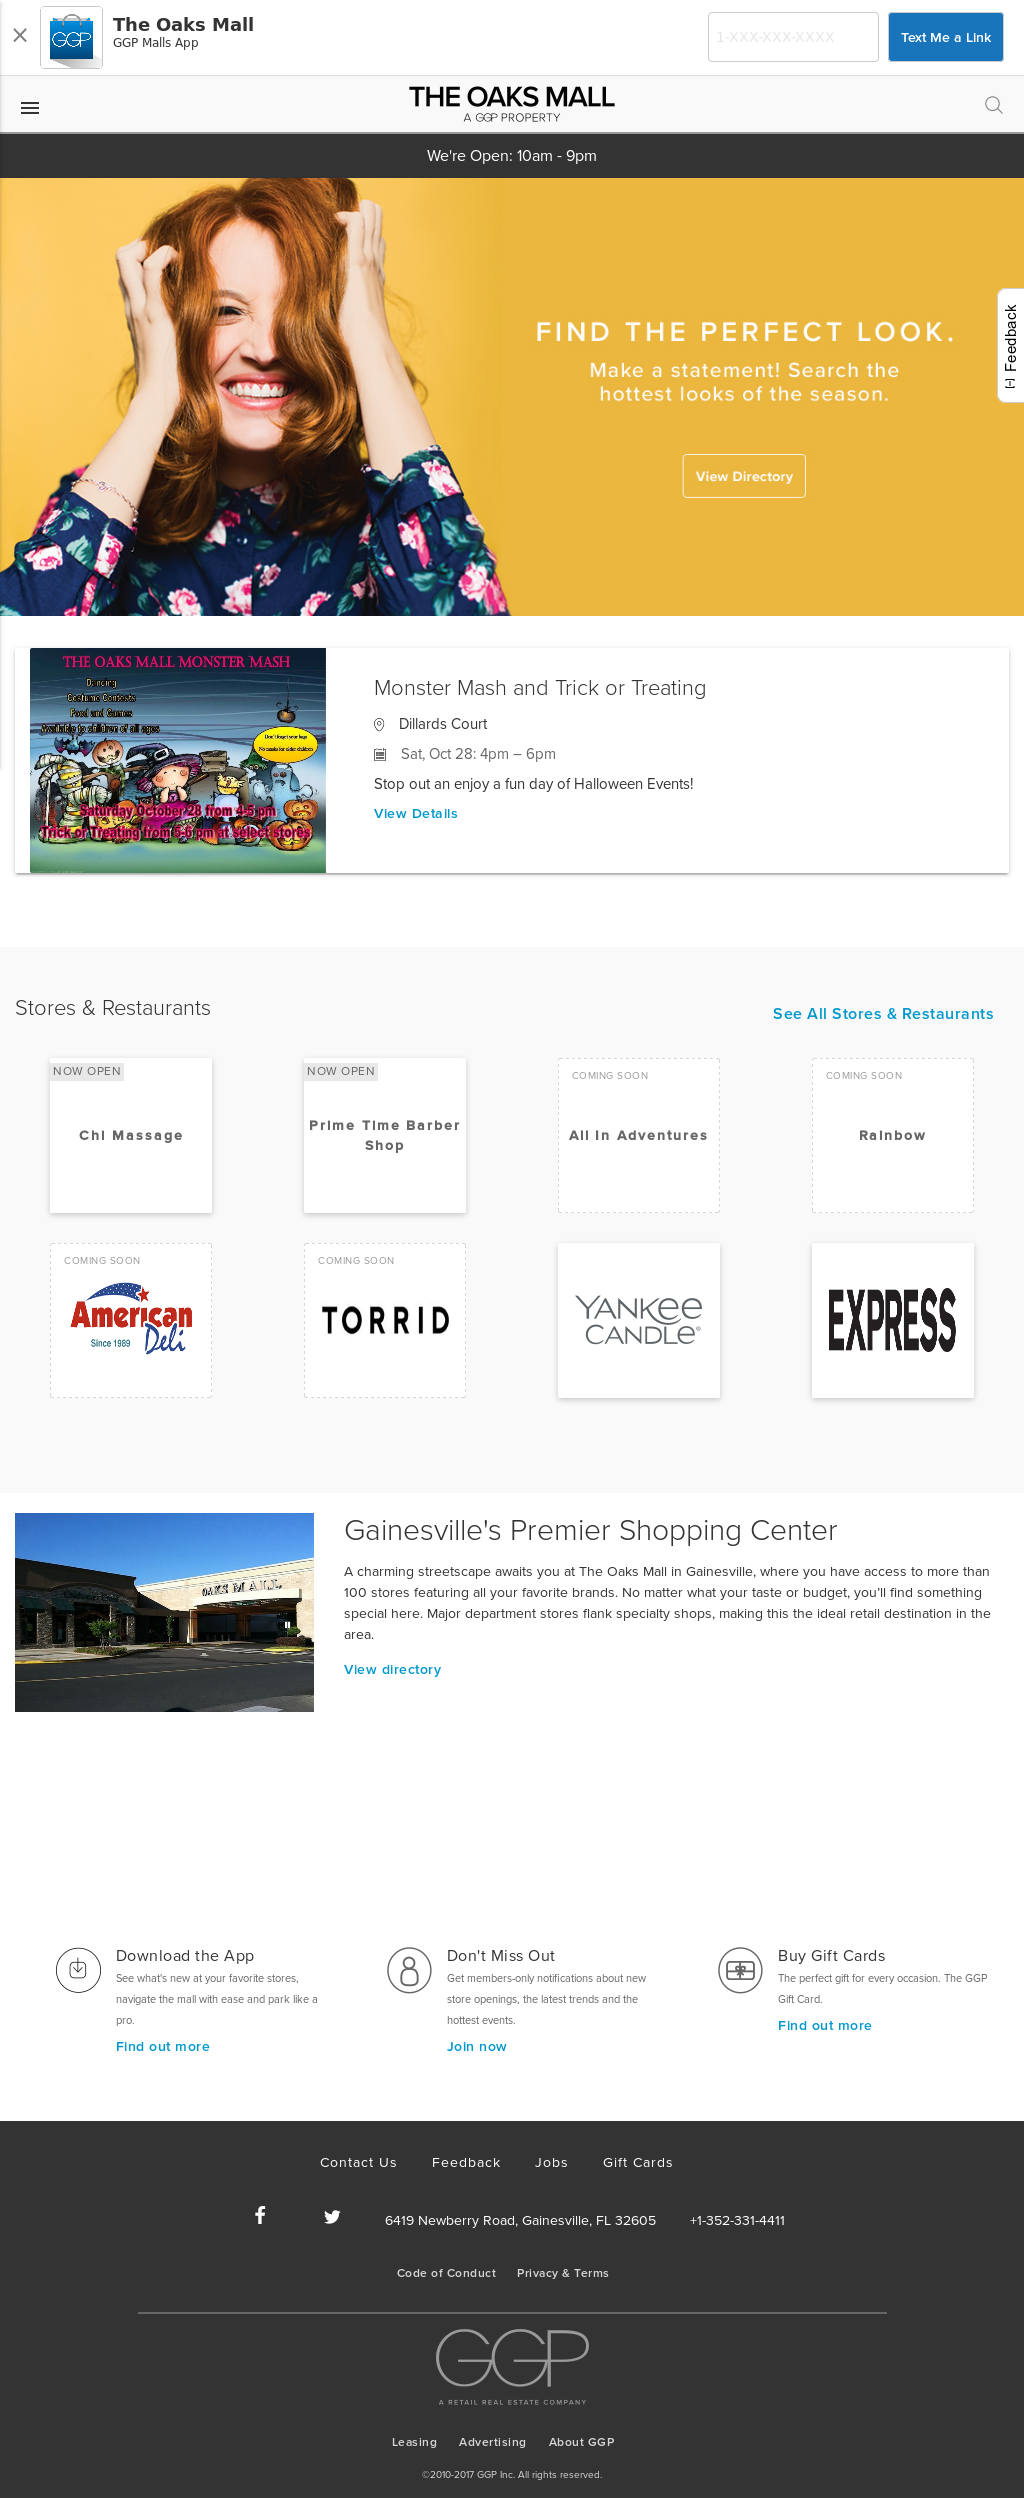 The Oaks Mall Competitors, Revenue and Employees - Owler